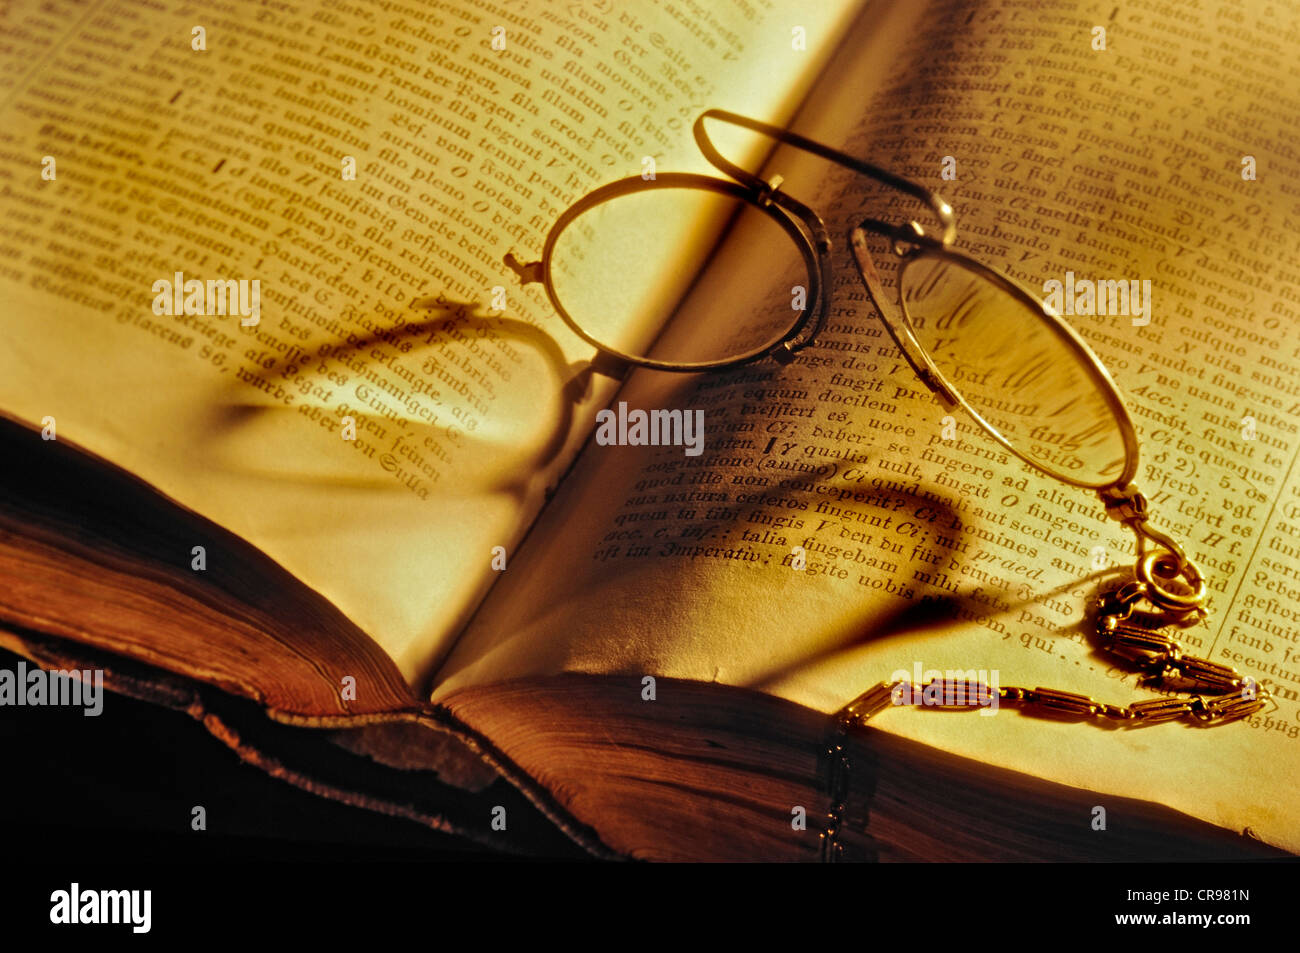 9a82e5198c2f Pince-nez spectacles on an old Stowasser Latin-German dictionary - Stock  Image